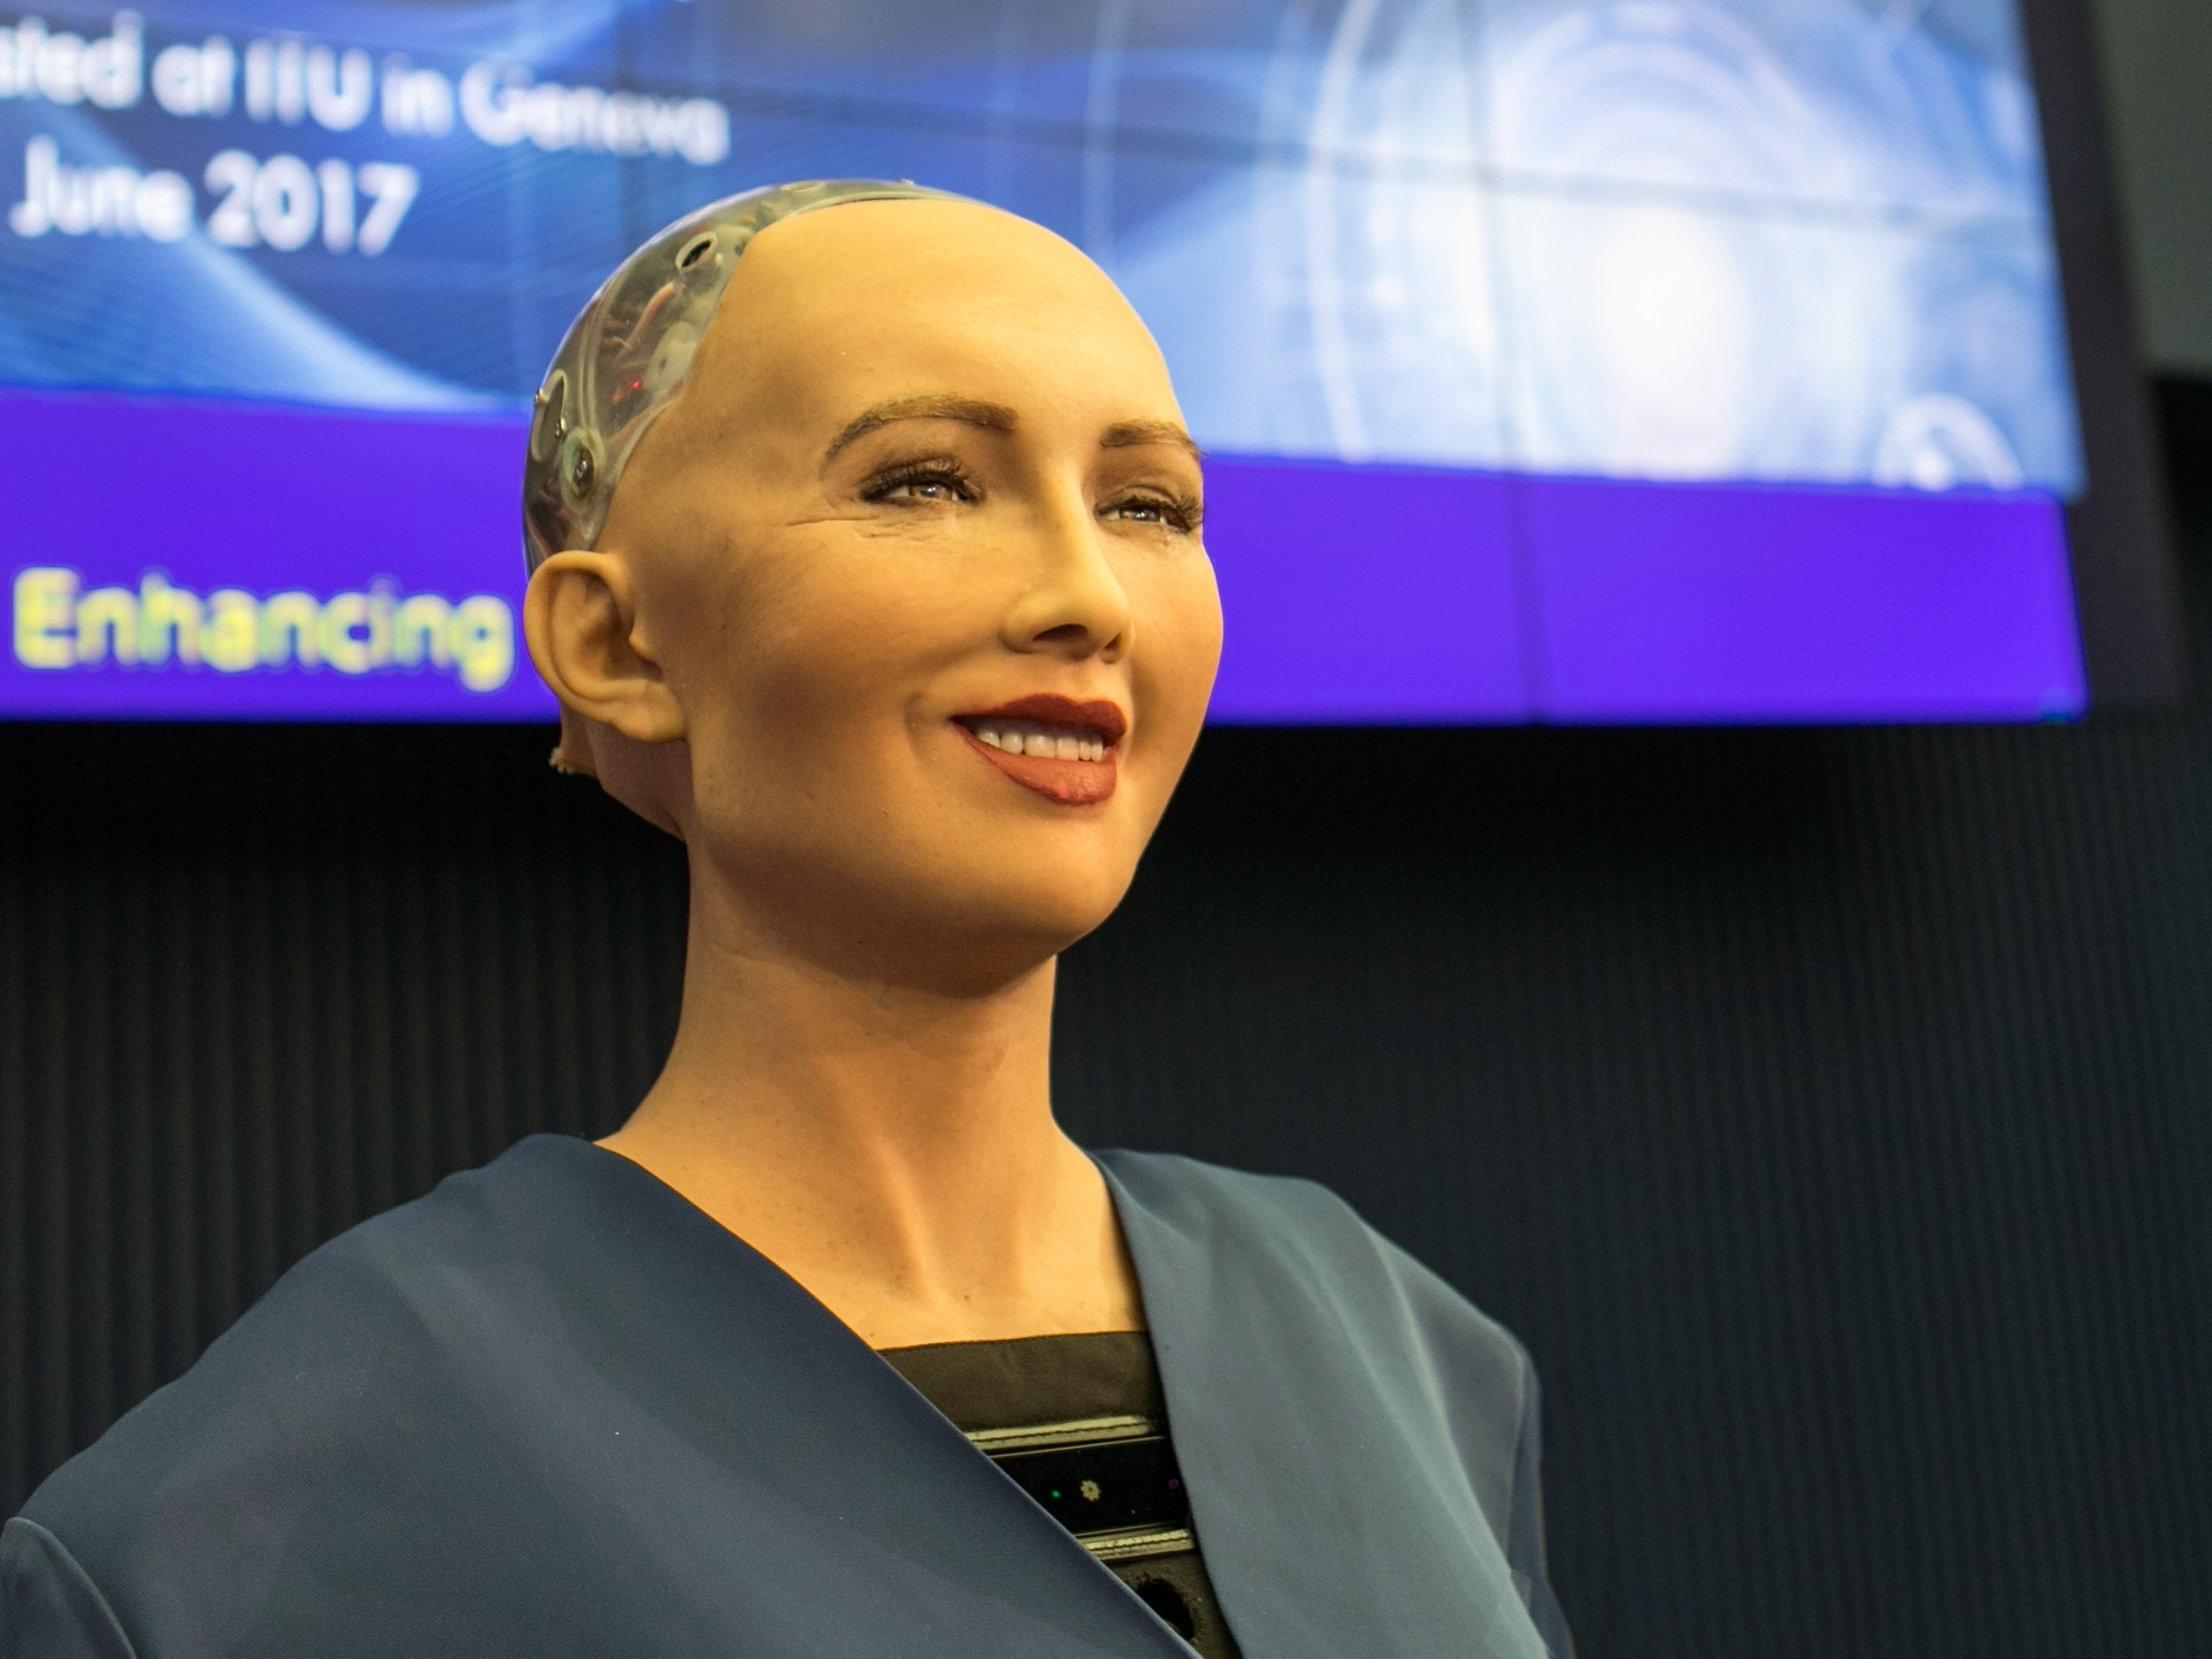 Robots are not neutral: how they affect human behavior?